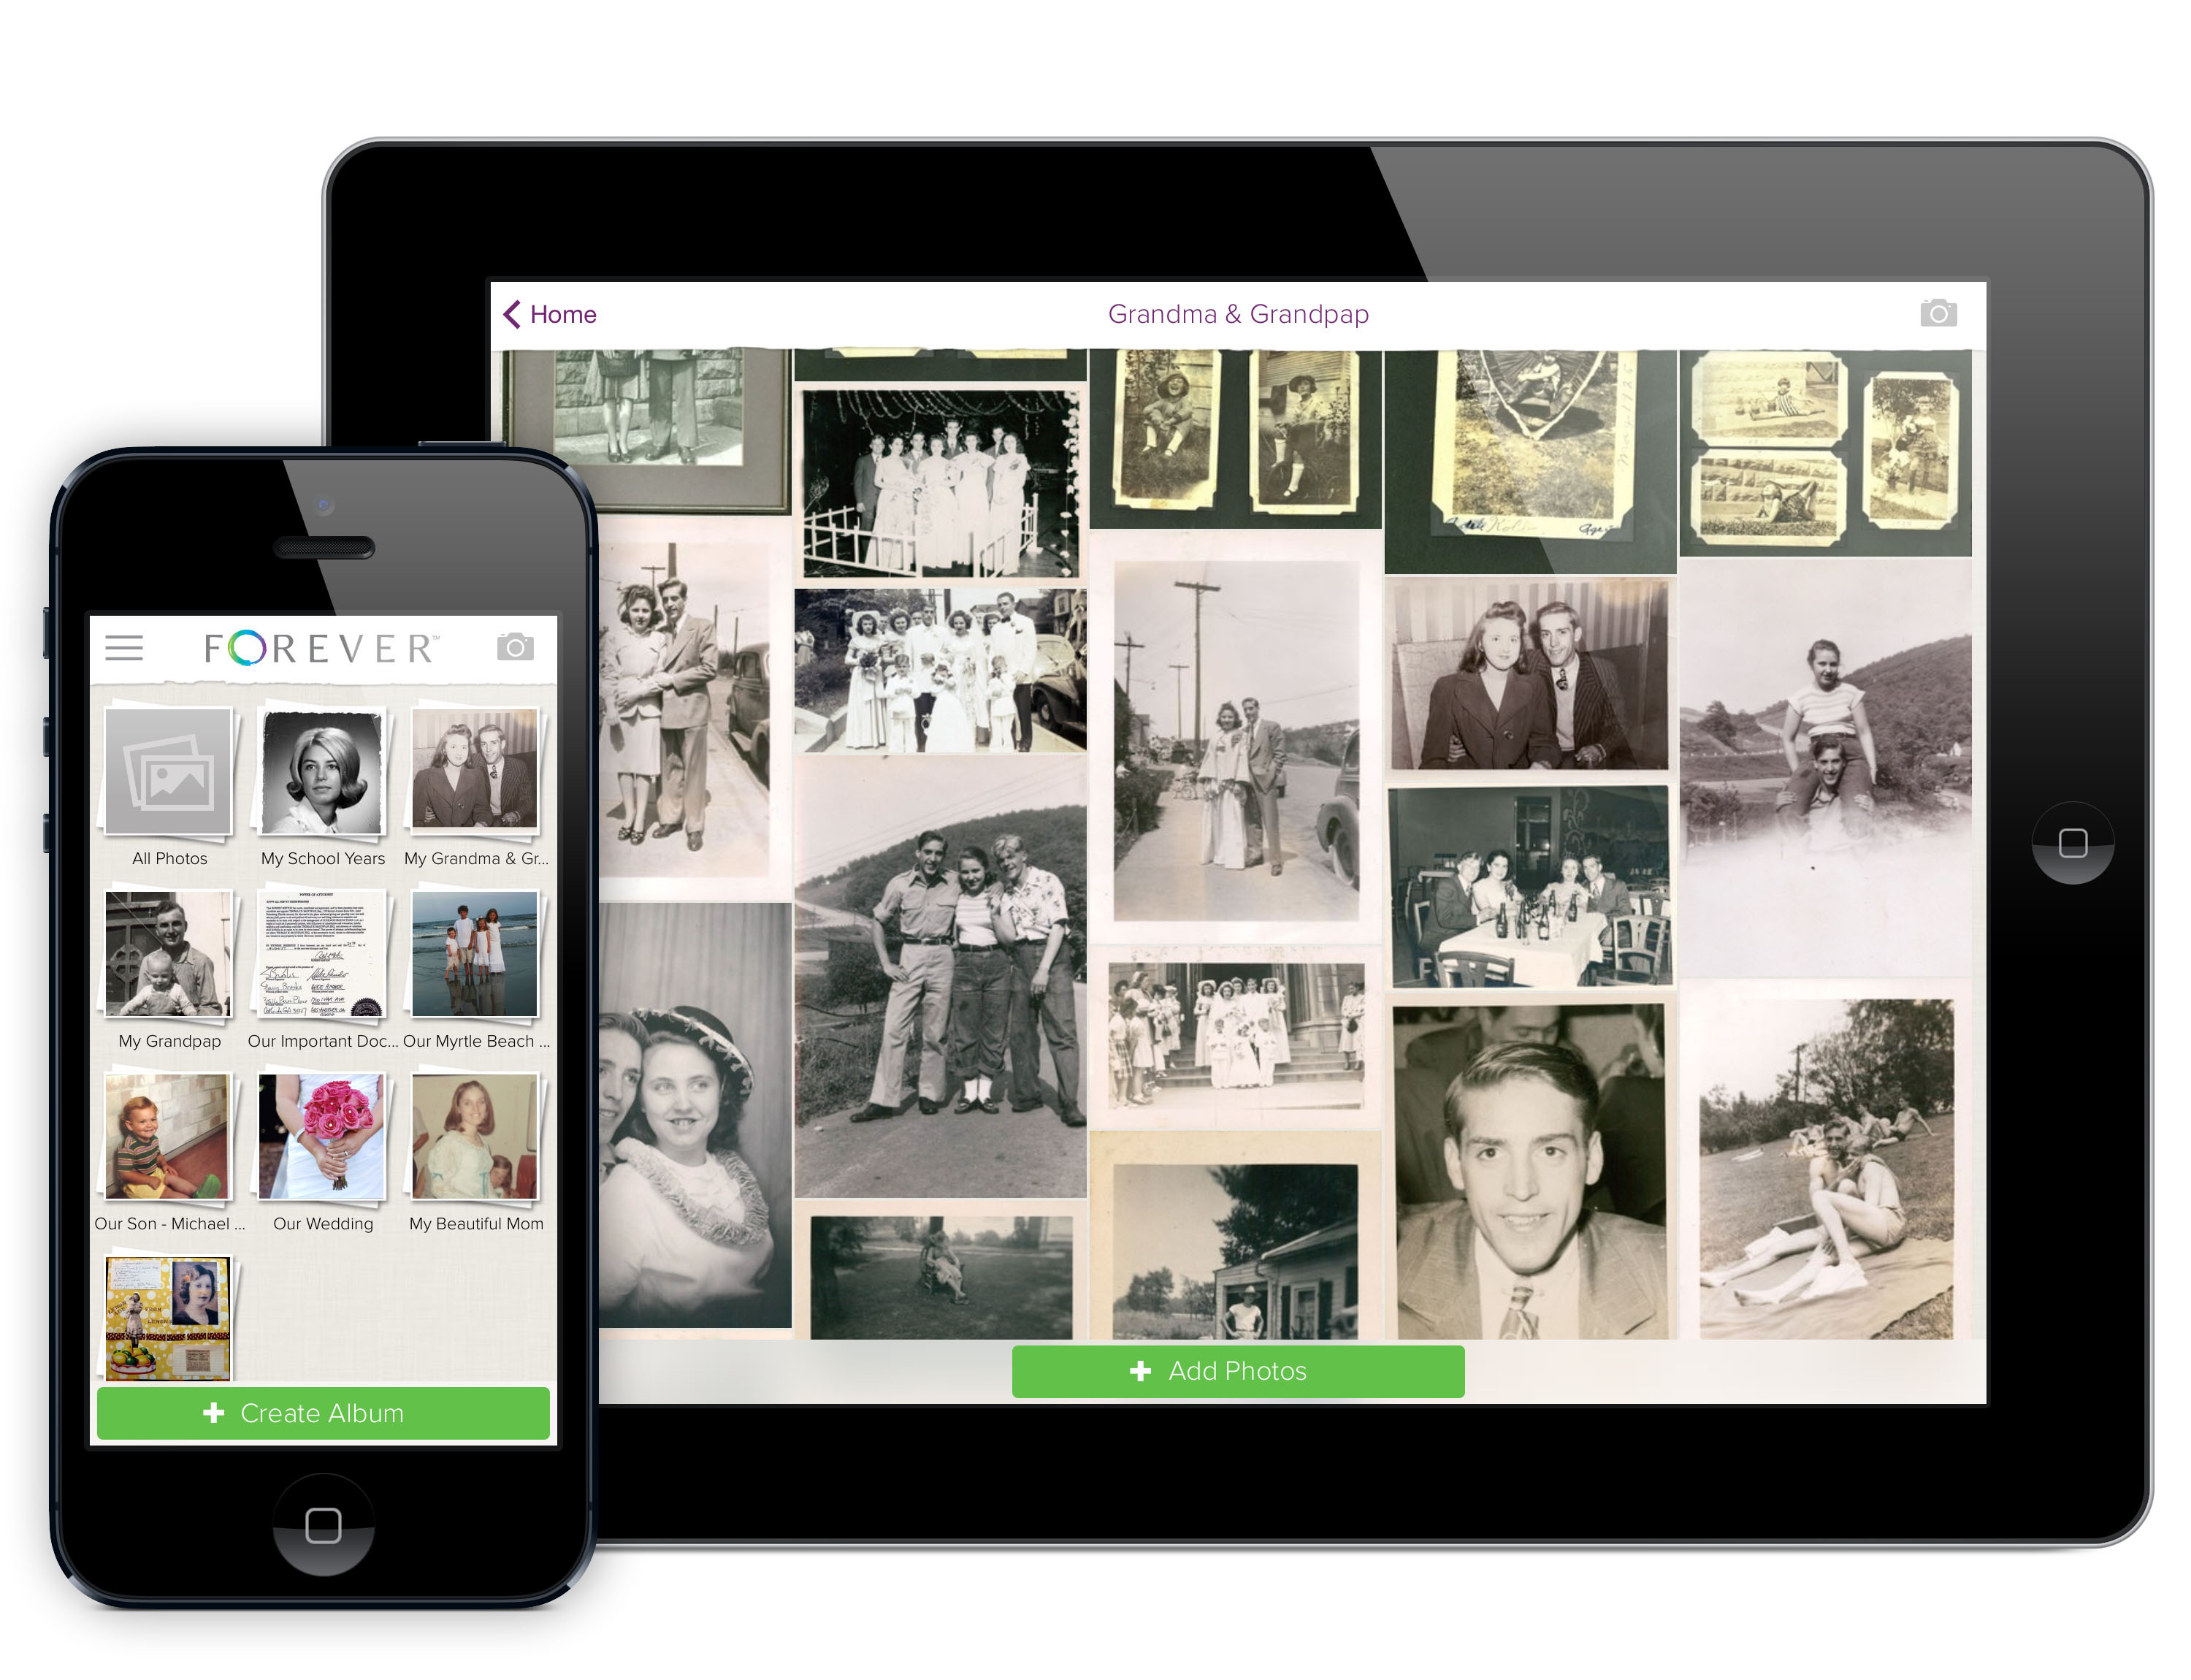 forever launches award winning ios app for iphone and ipad business wire - Ipad And Iphone Mockup